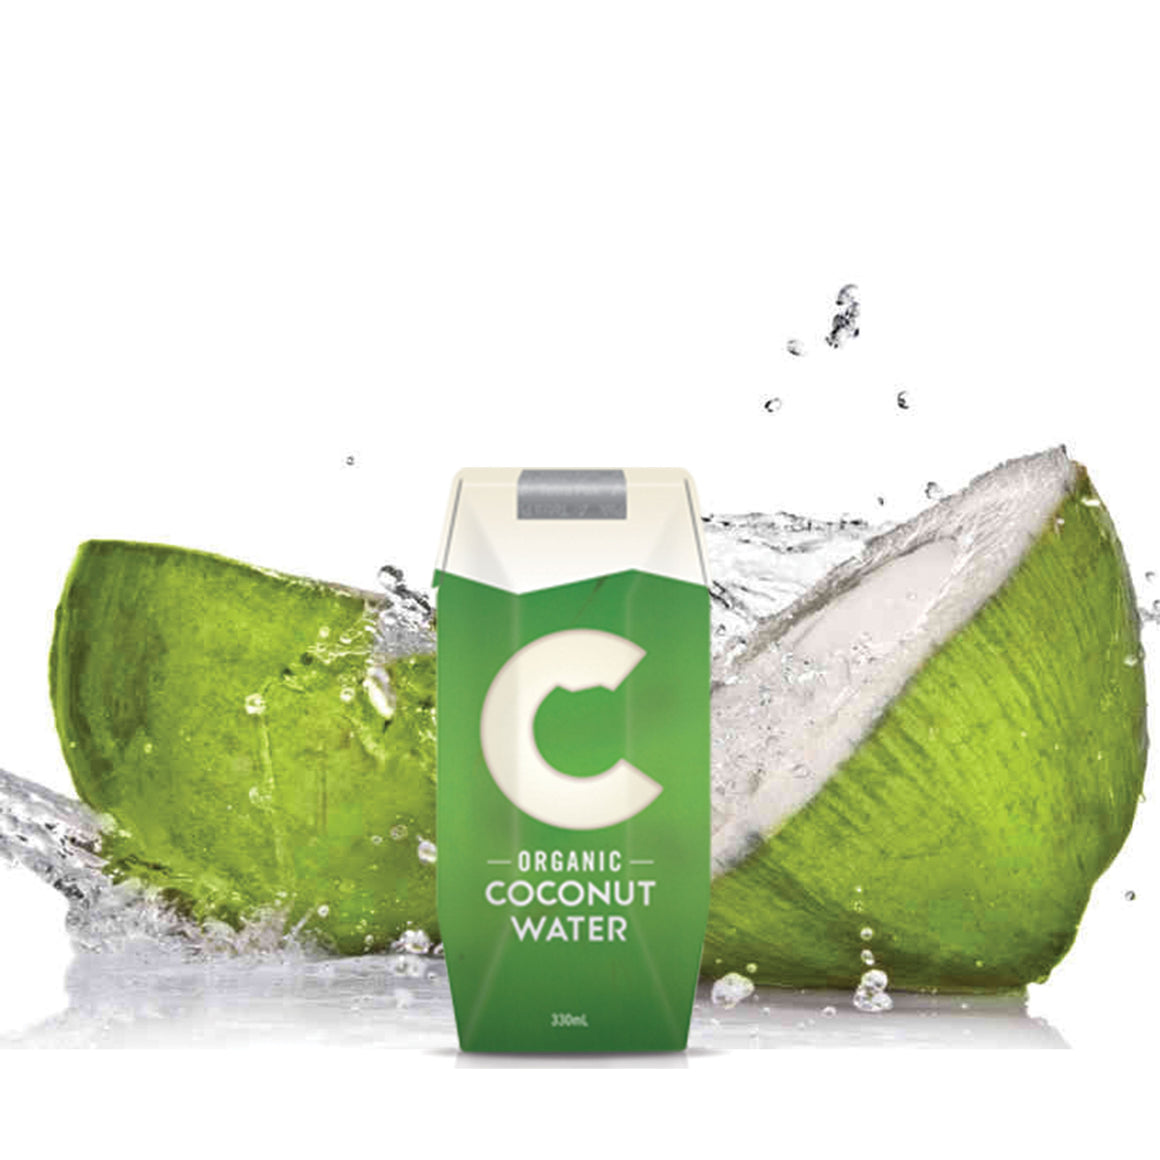 Organic Coconut Water 1 Carton (330ml X 12)